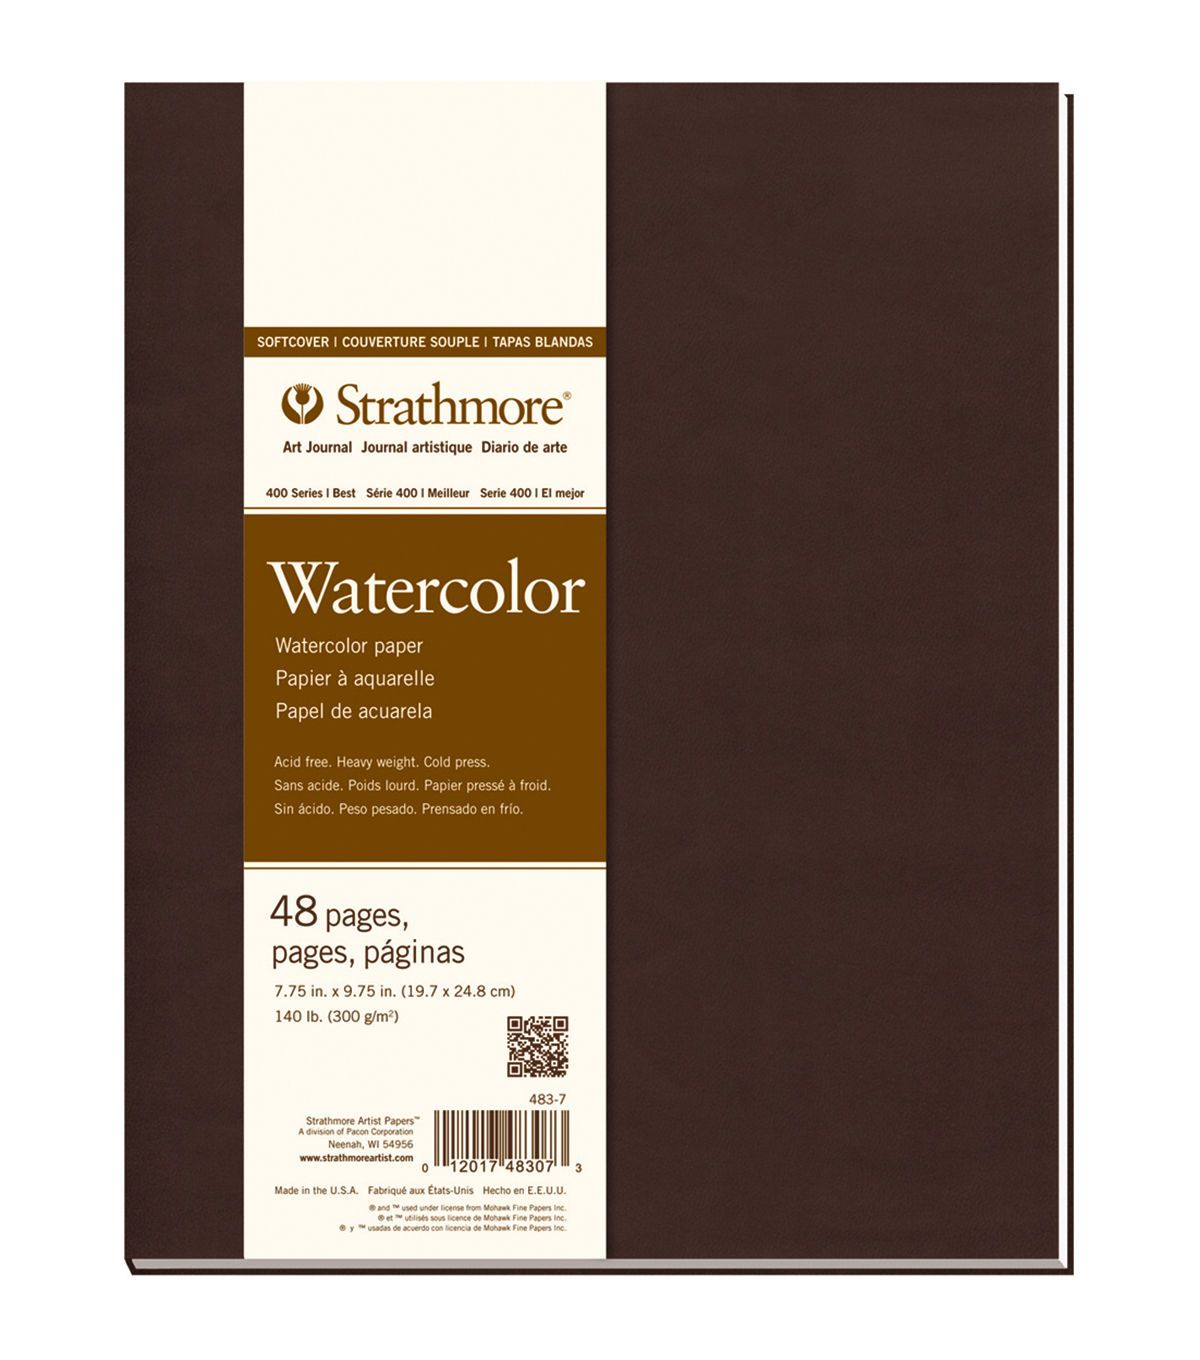 Strathmore Soft Cover Watercolor Journal Book With 48 Pages 7 75